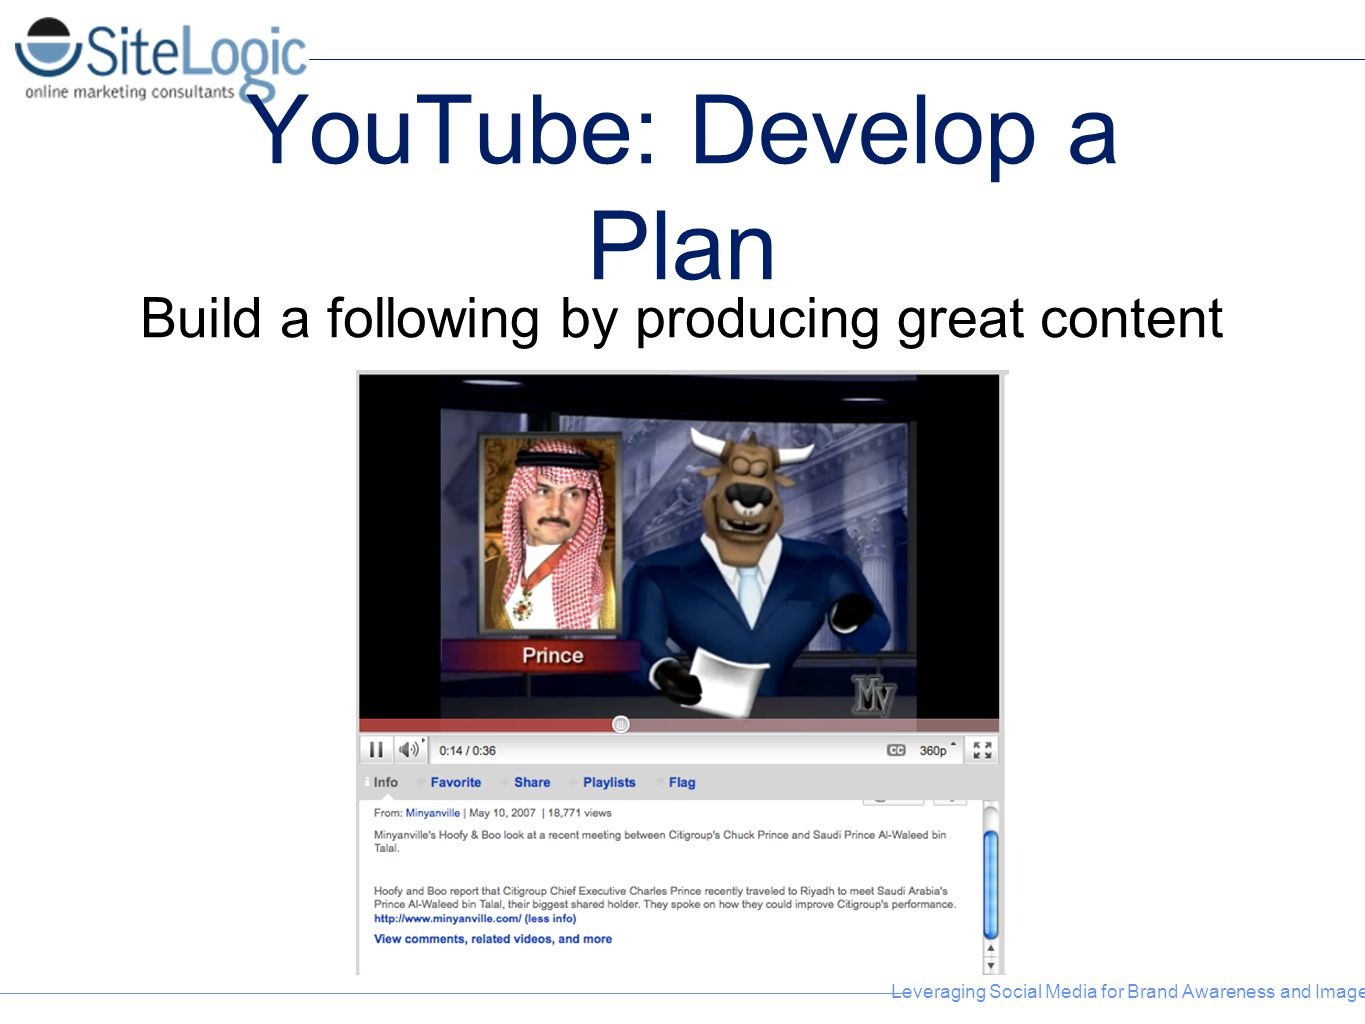 Leveraging Social Media for Brand Awareness and Image YouTube: Develop a Plan Build a following by producing great content